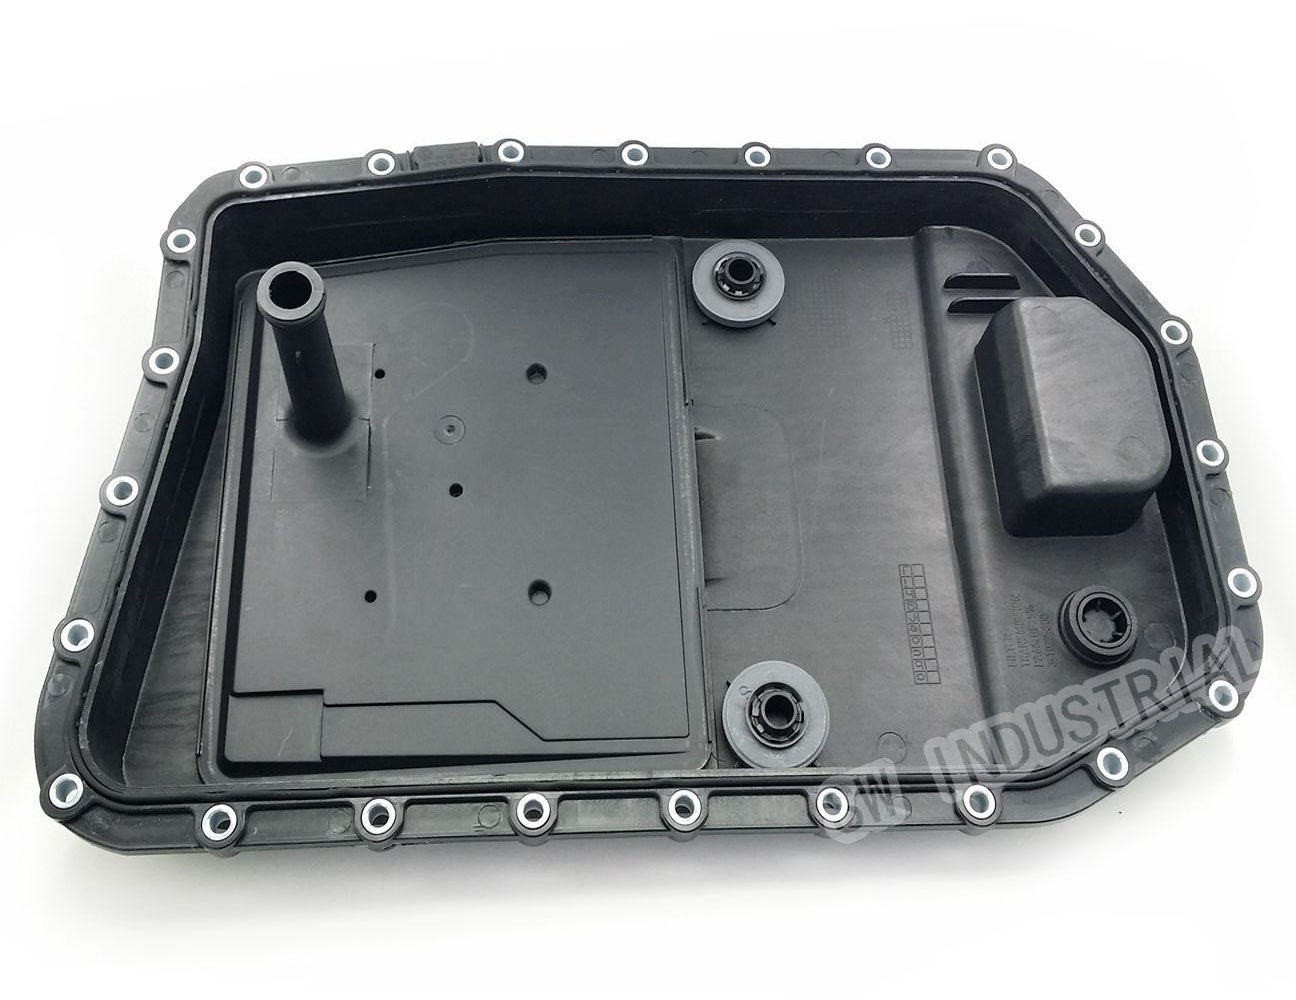 SWI Parts BMW Automatic Transmission Oil Pan + Filter + Gasket + Drain Plug 24152333907/24117571217 SW INDUSTRIAL